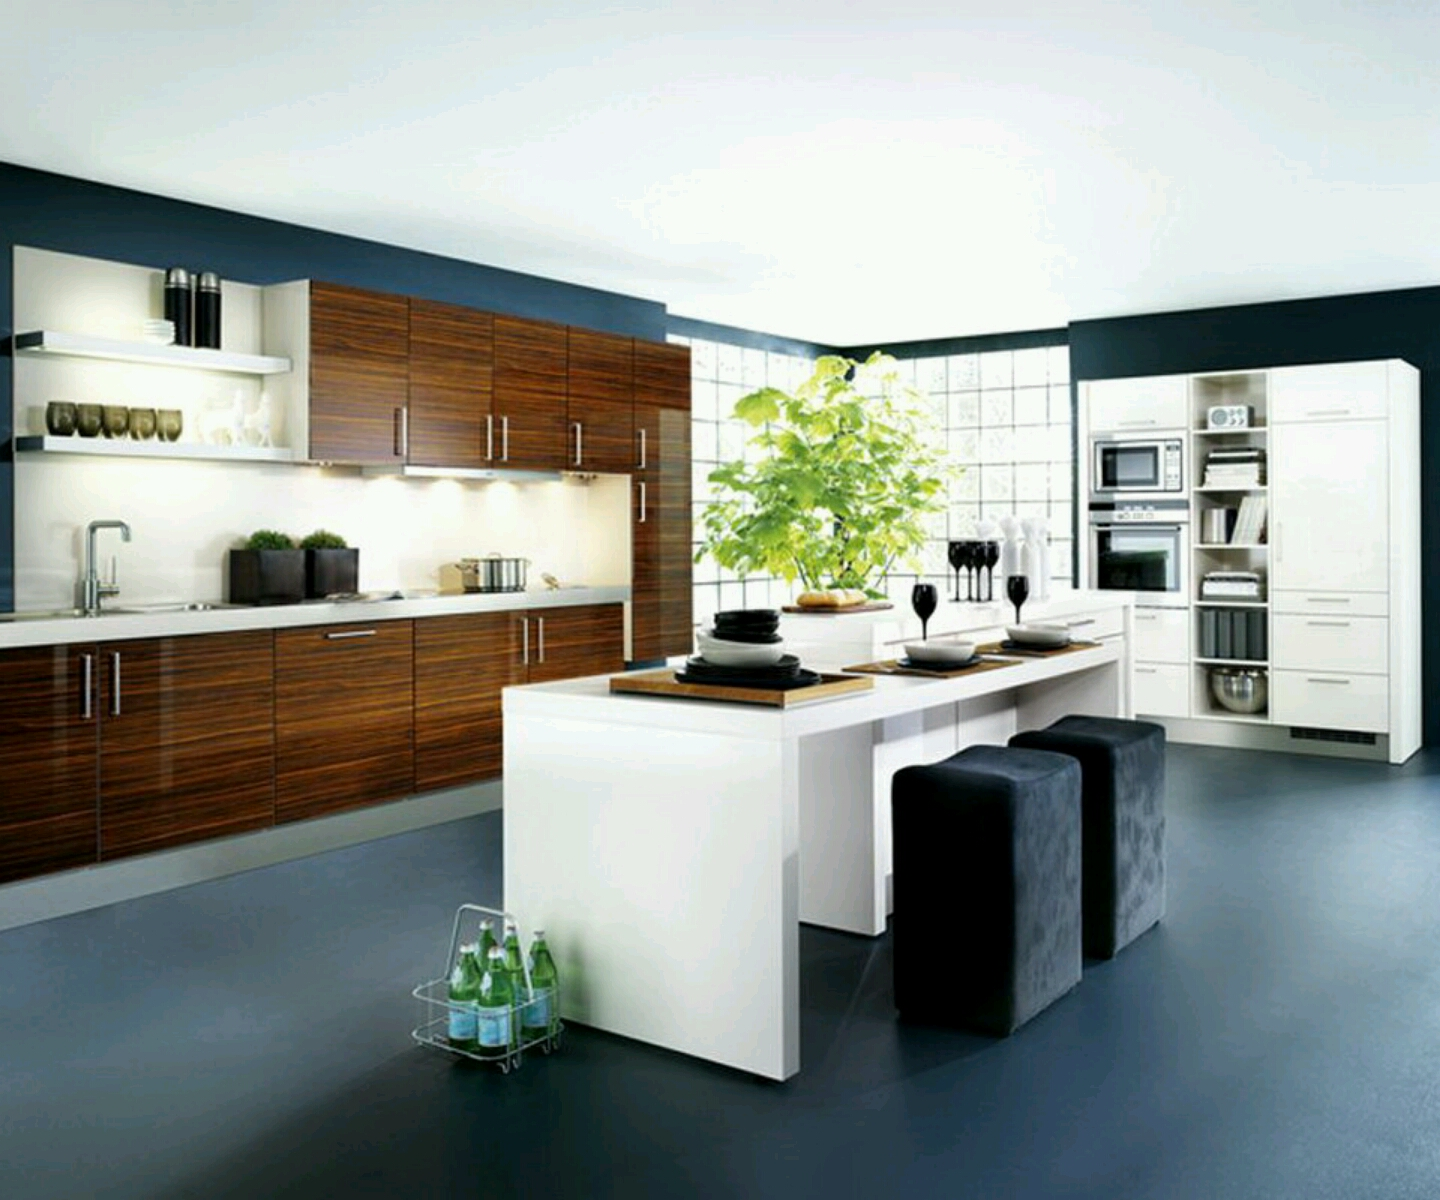 New home designs latest kitchen cabinets designs modern for Modern kitchen plan